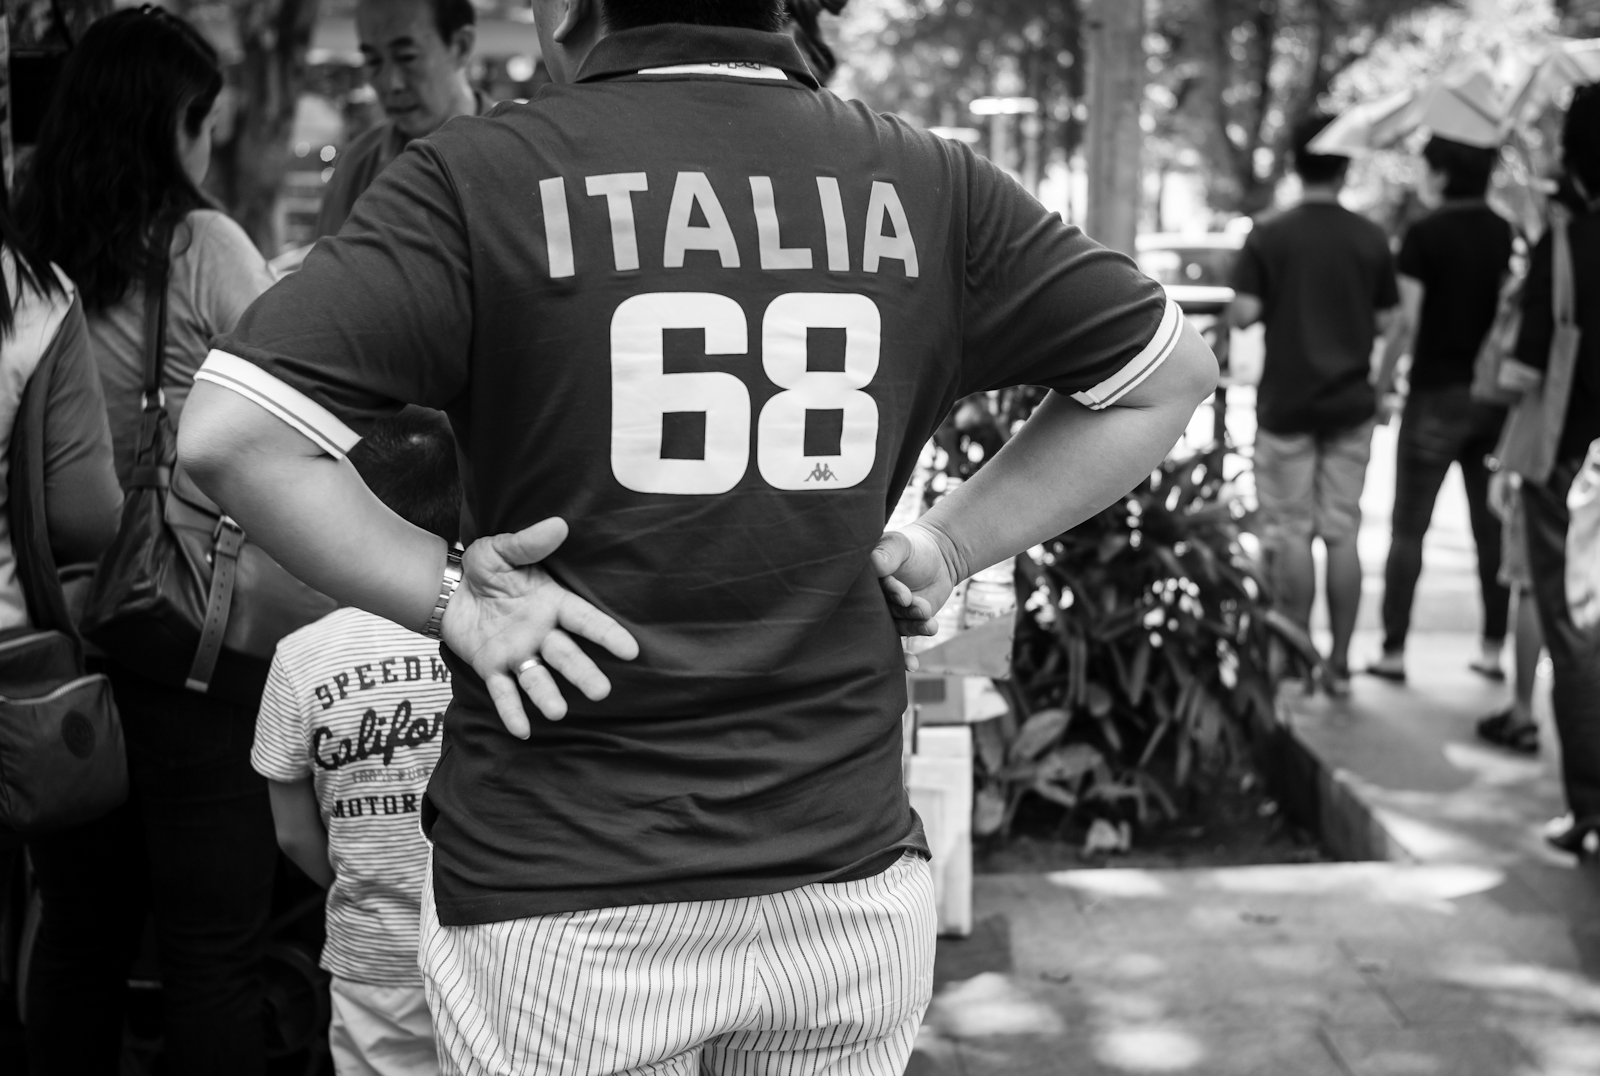 Street photography - Man wearing a polo shirt with